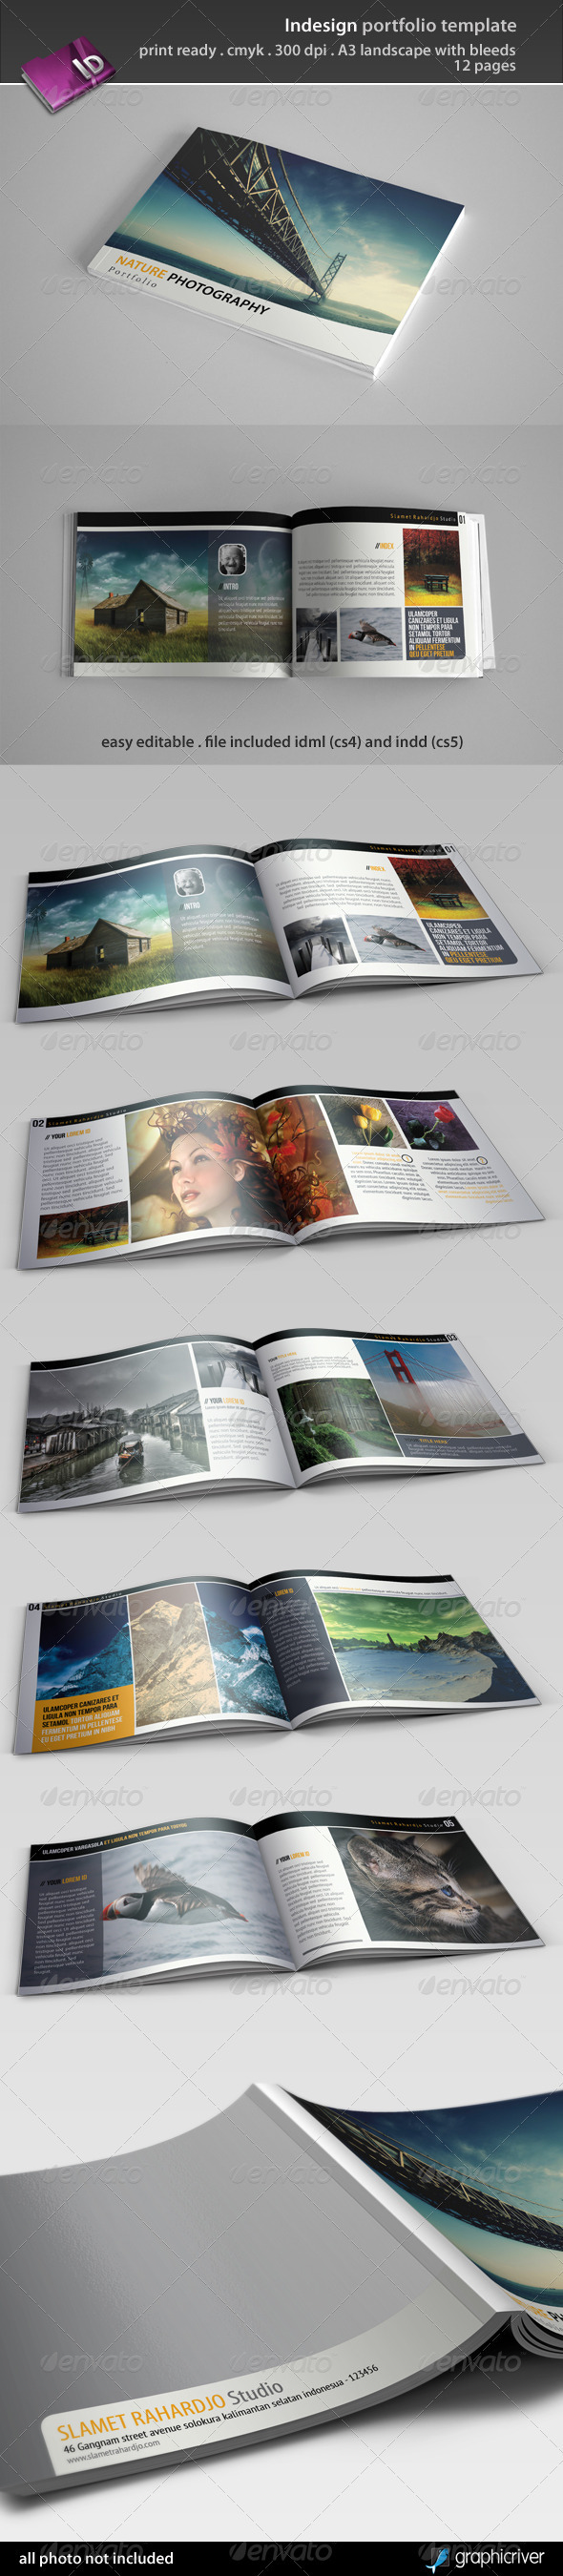 Indesign Portfolio Template by semutireng | GraphicRiver